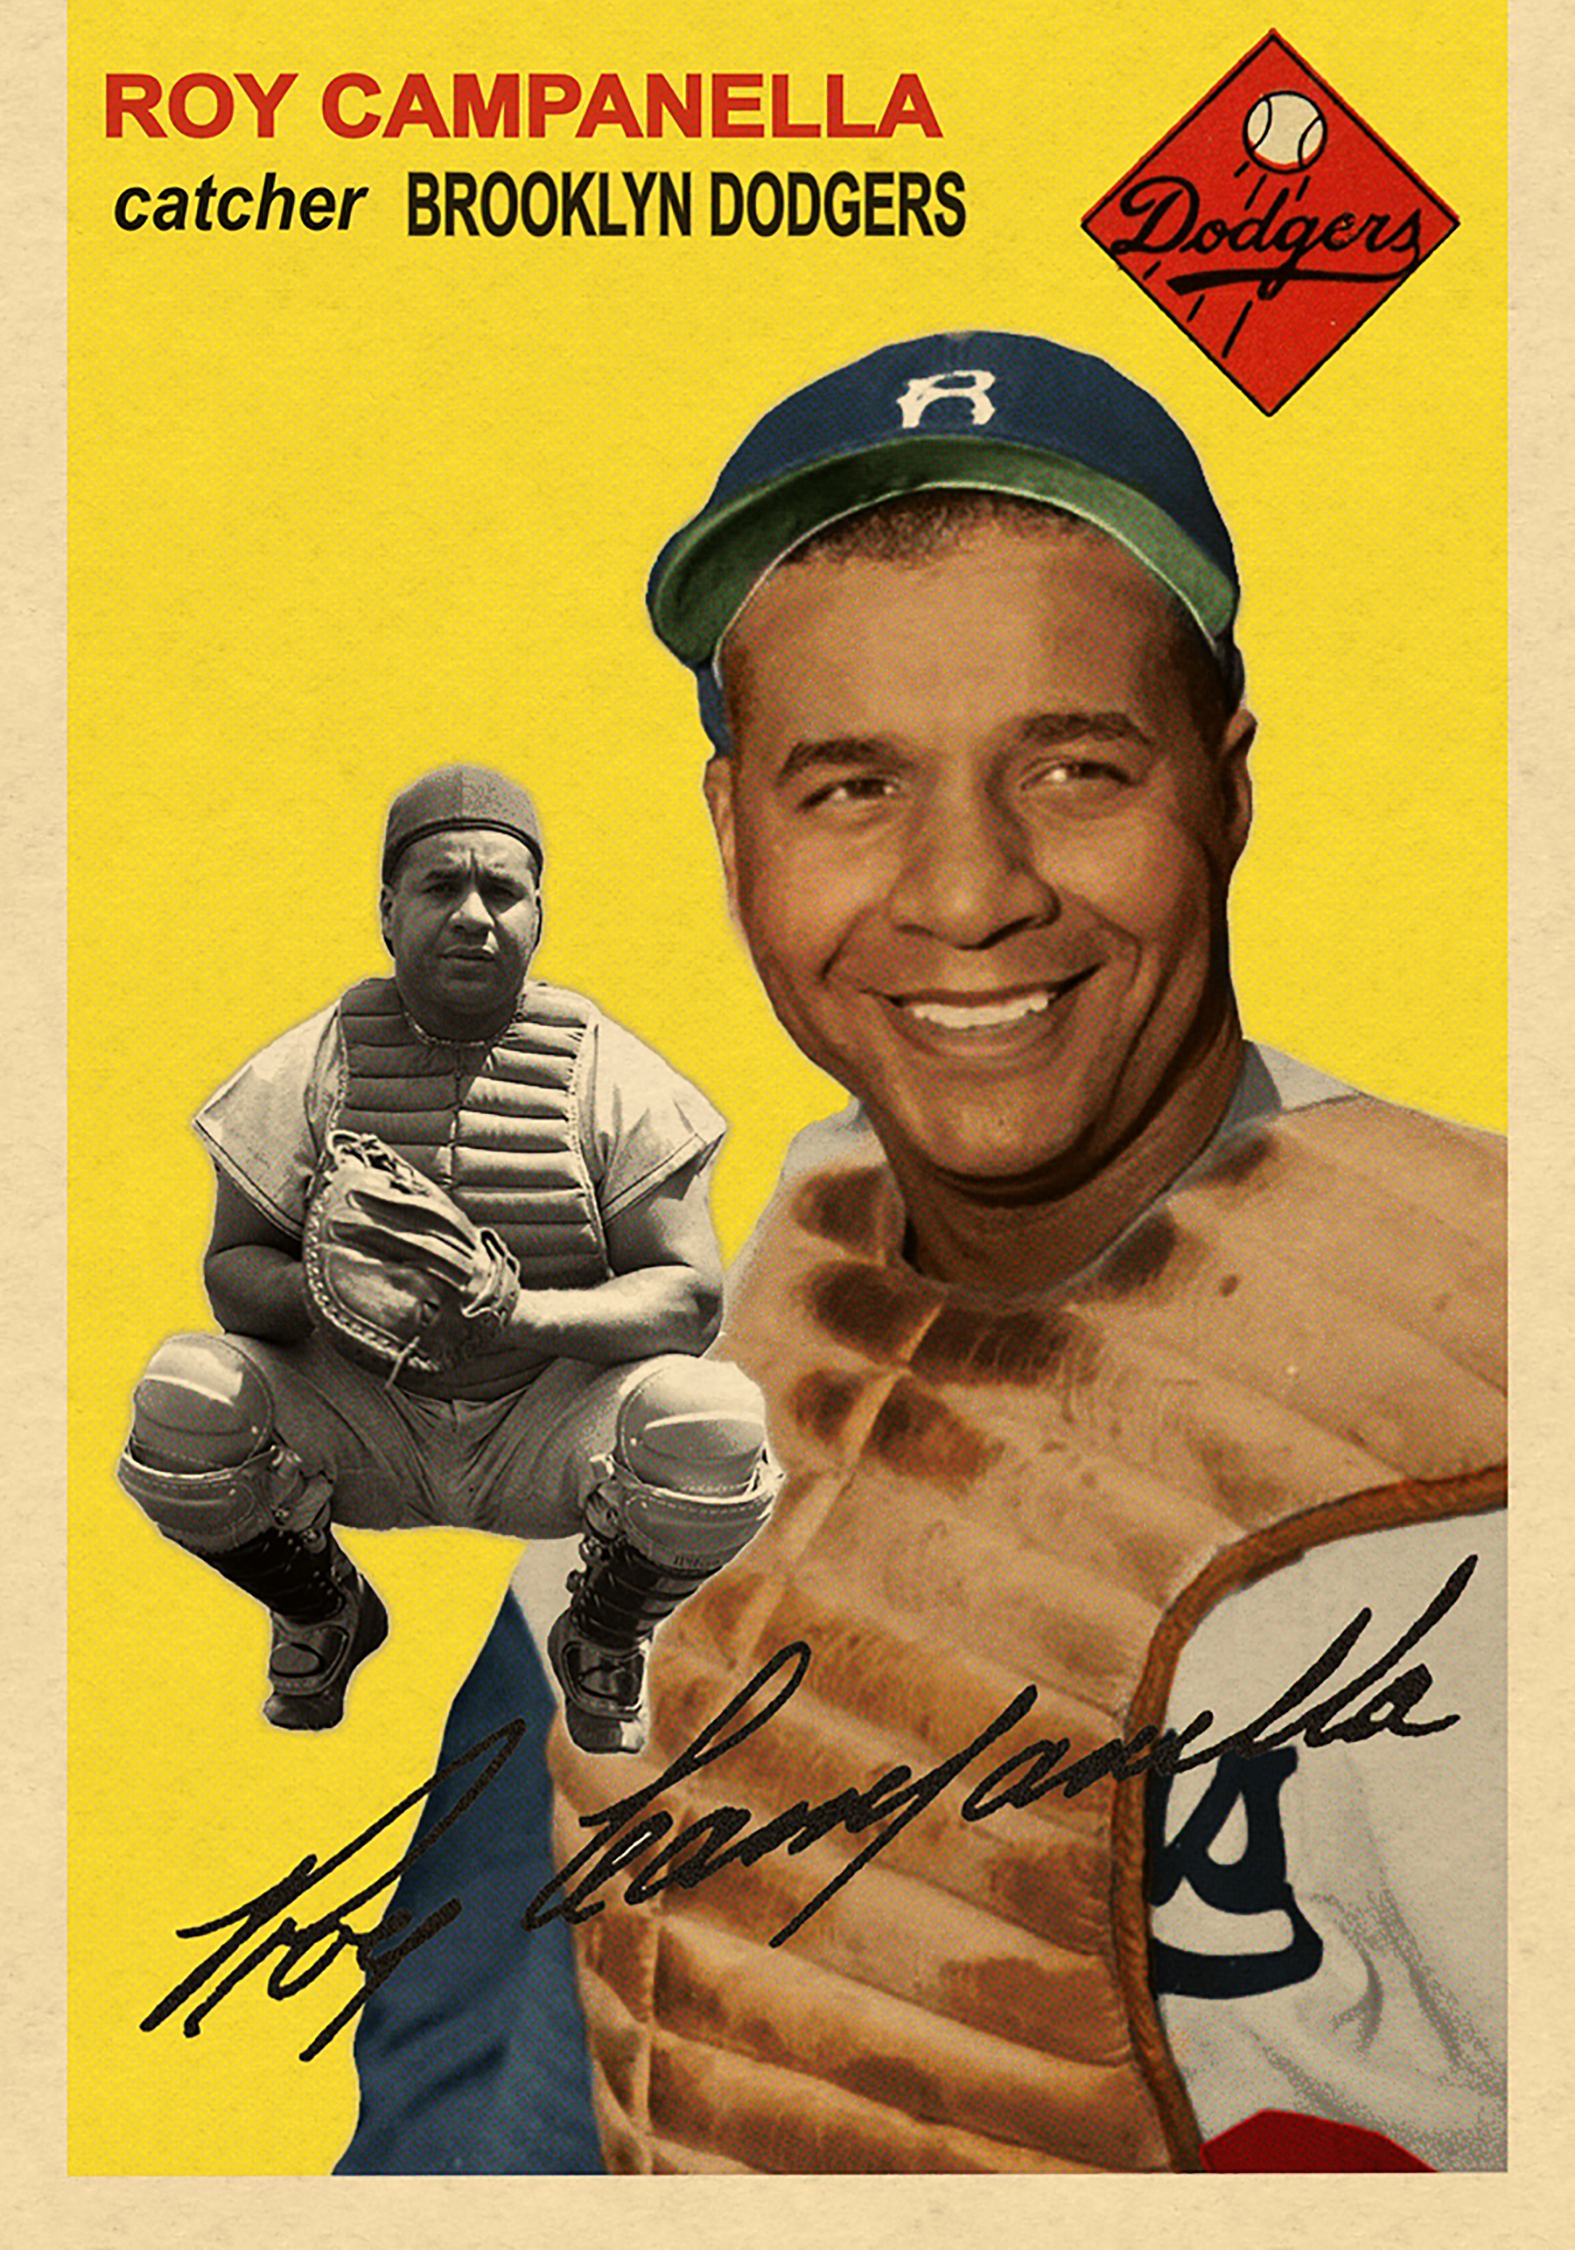 1954 LOST IN THE 50's- ROY CAMPANELLA 4/2/18 Auction Closes at $202.50 USD - Current Population of 1